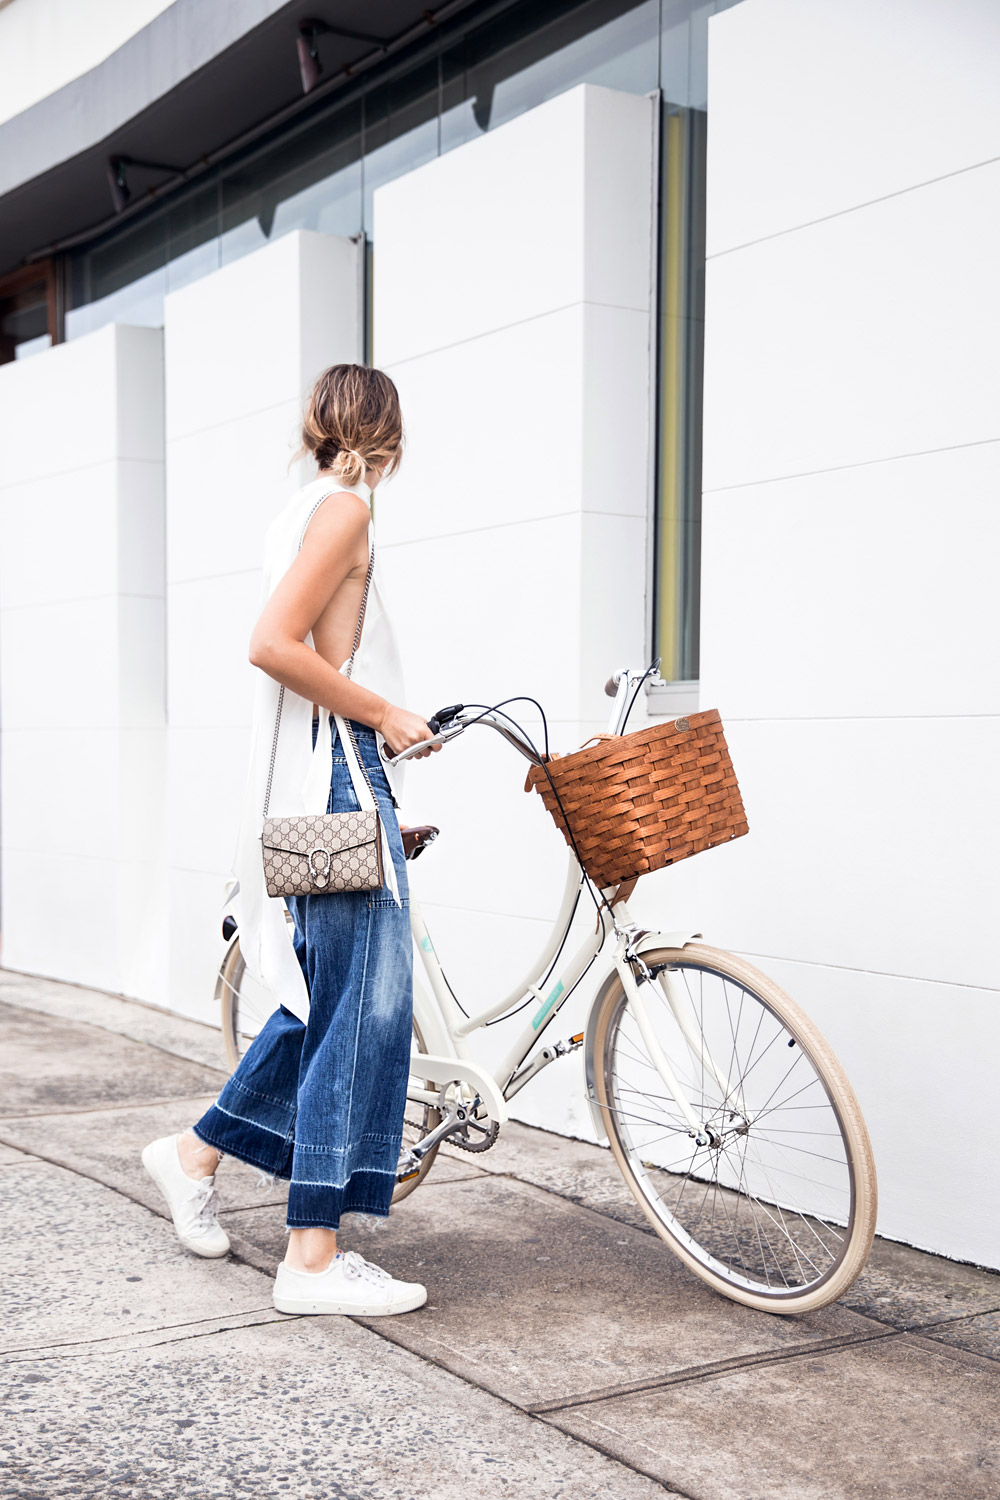 Communication on this topic: 37 Fresh Ways to Style Denim DuringSummer, 37-fresh-ways-to-style-denim-duringsummer/